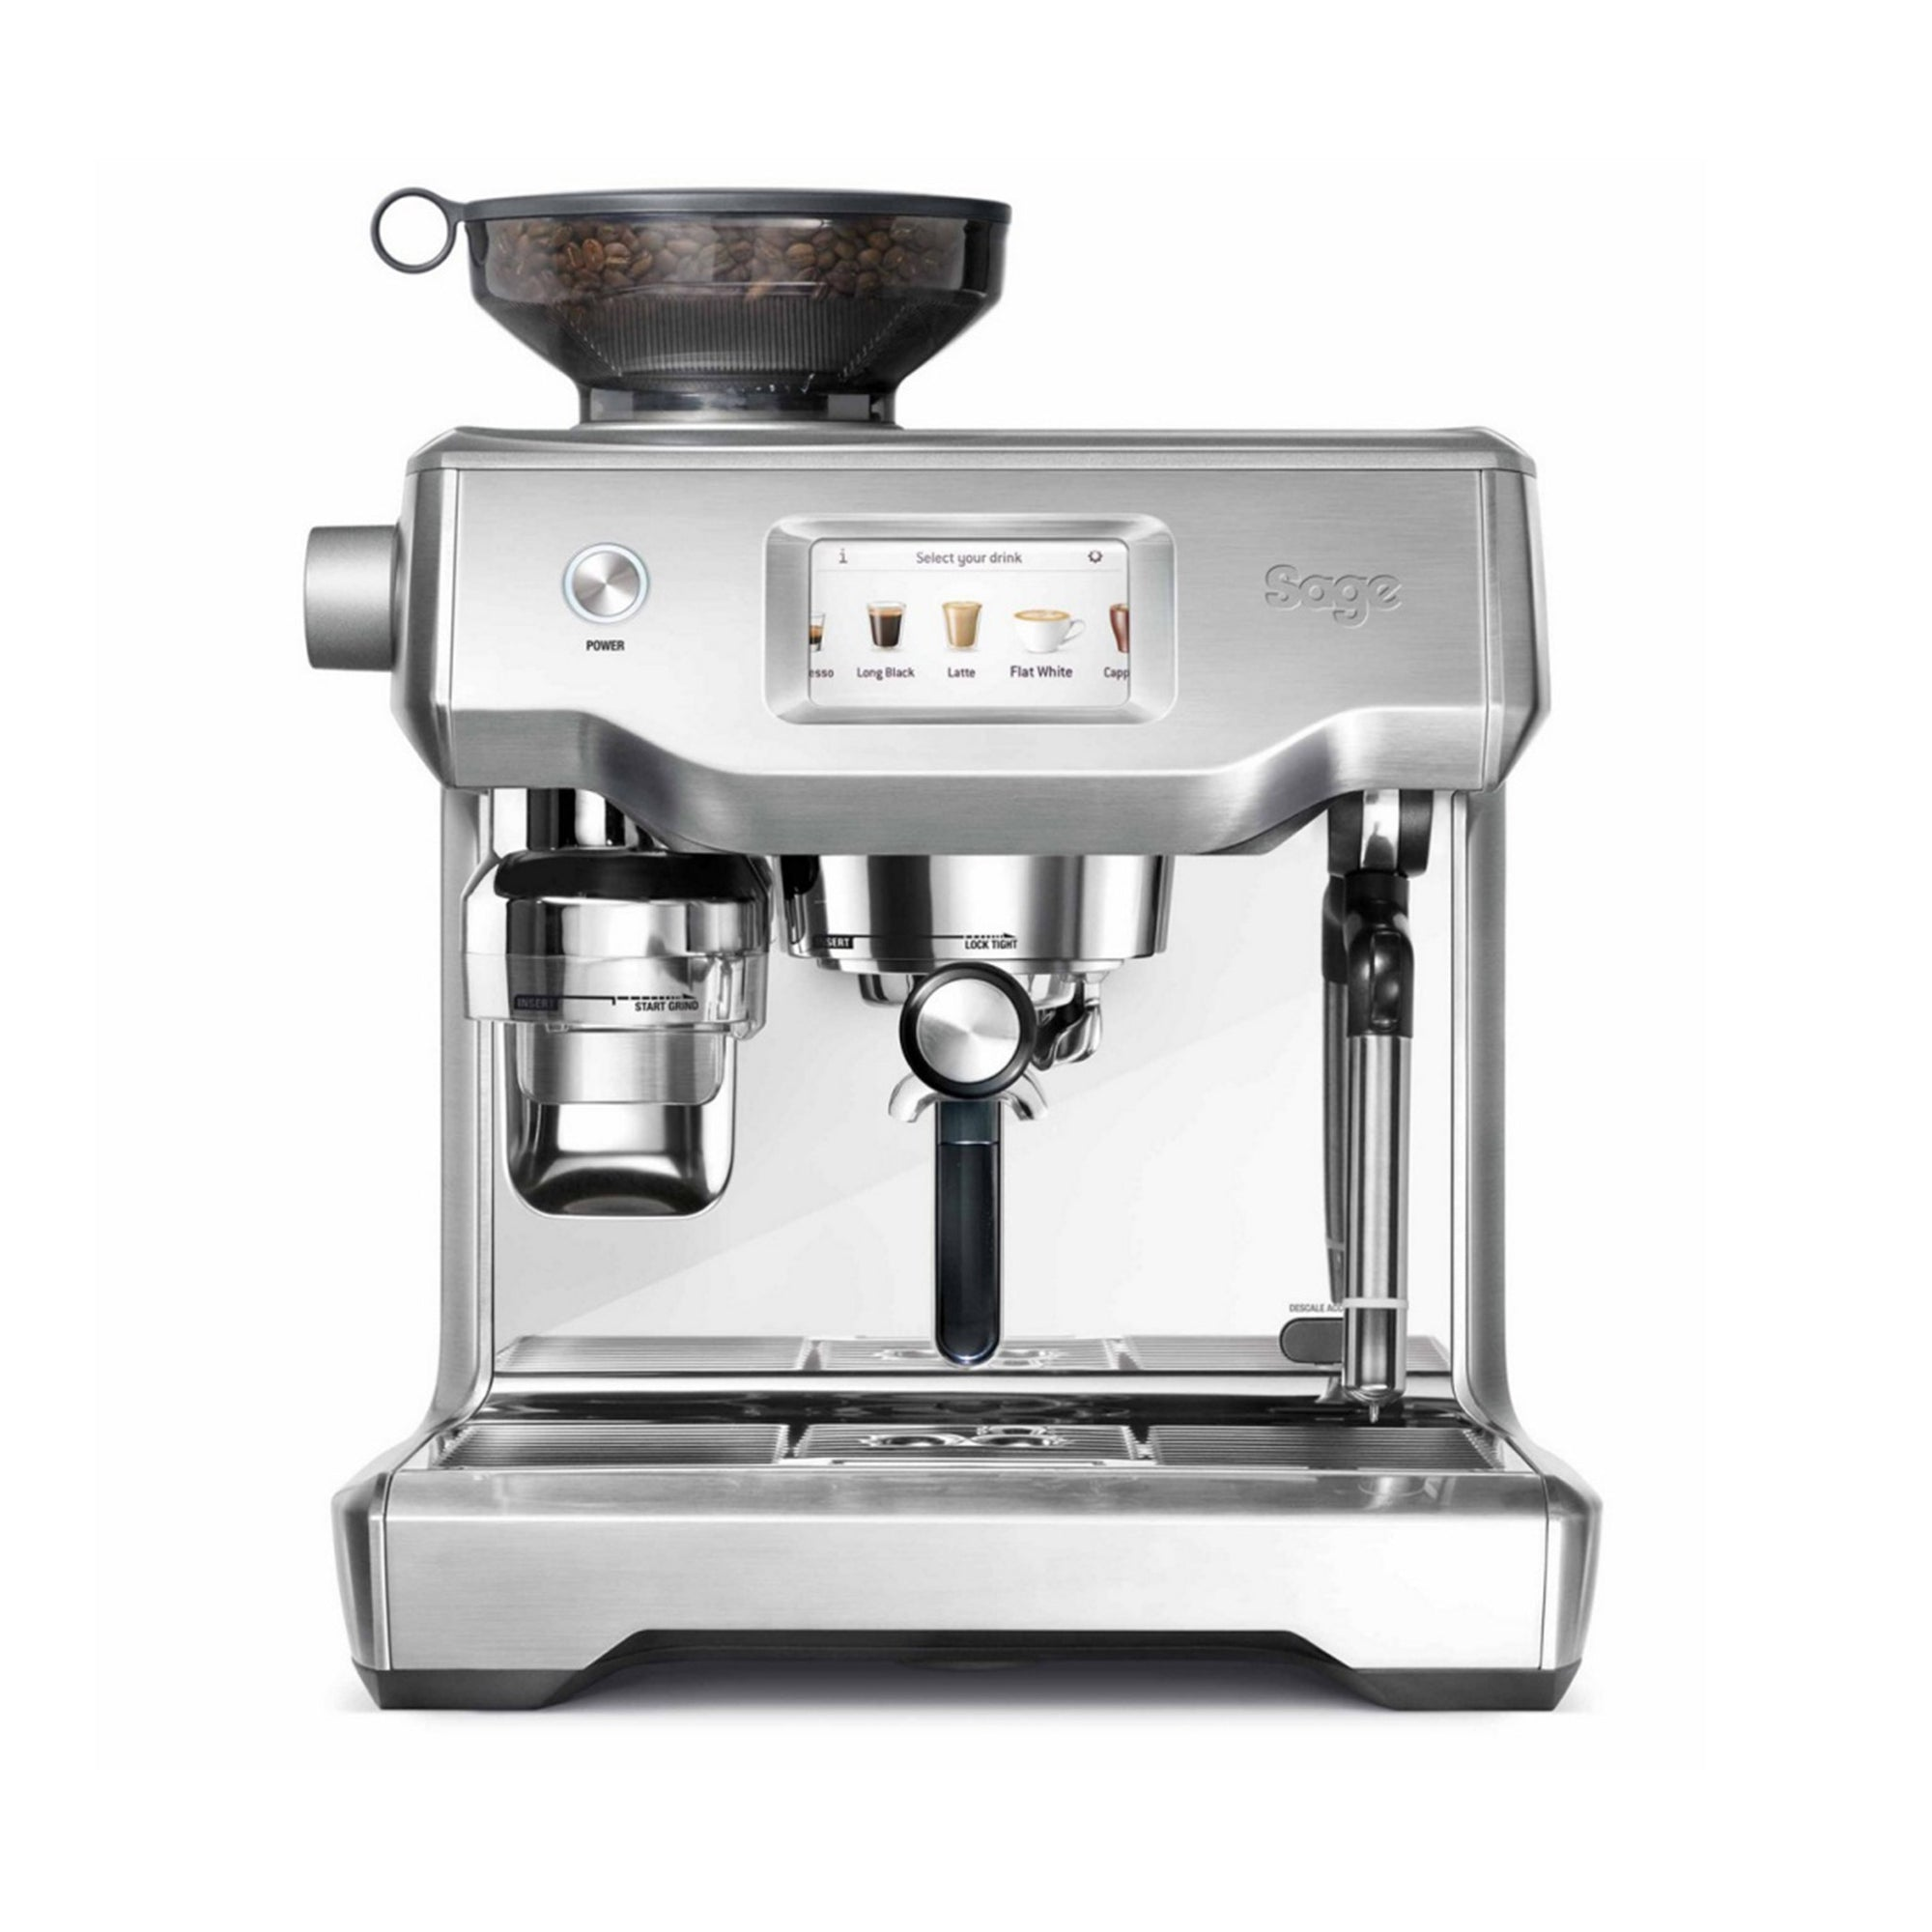 ESPRESSO MACHINE, THE ORACLE TOUCH SILVER - SAGE - Espresso Gear